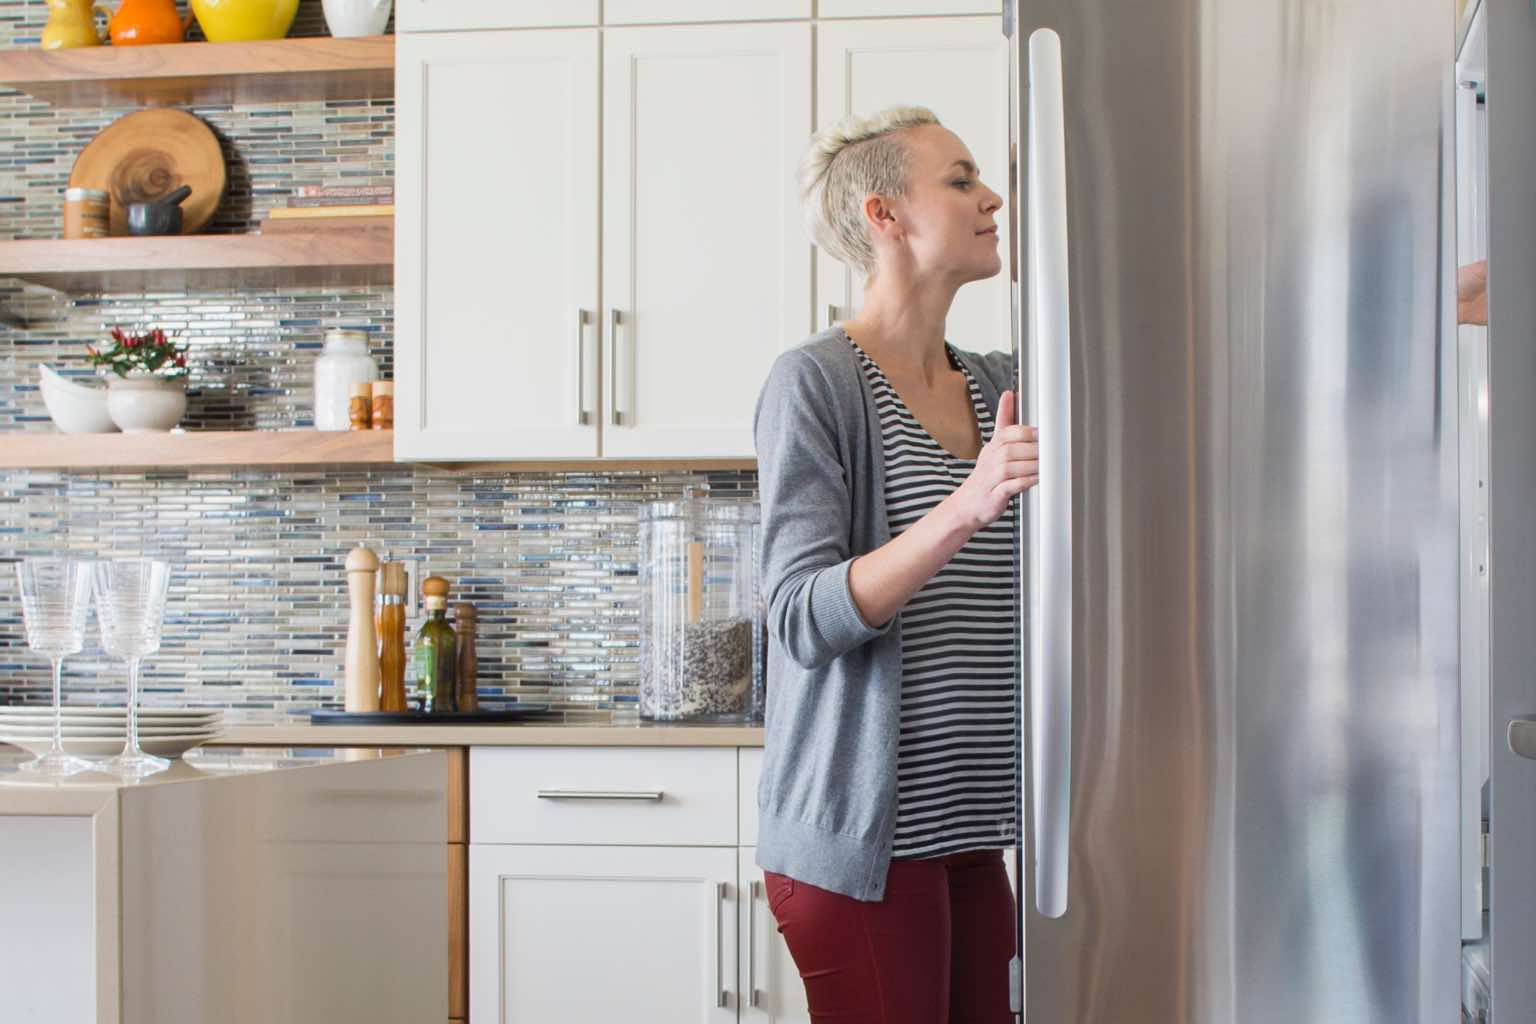 Woman reaching into her refrigerator while working from home.